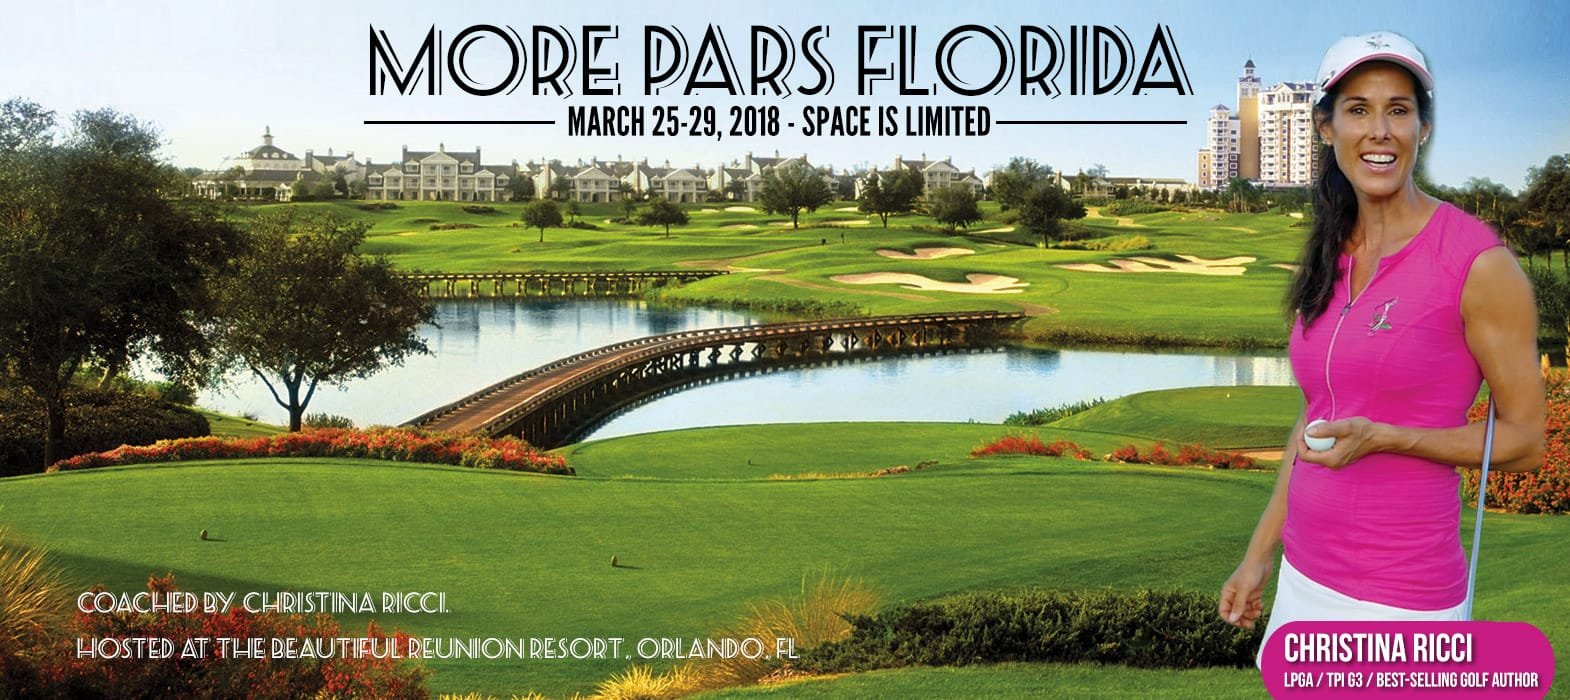 More Pars Florida